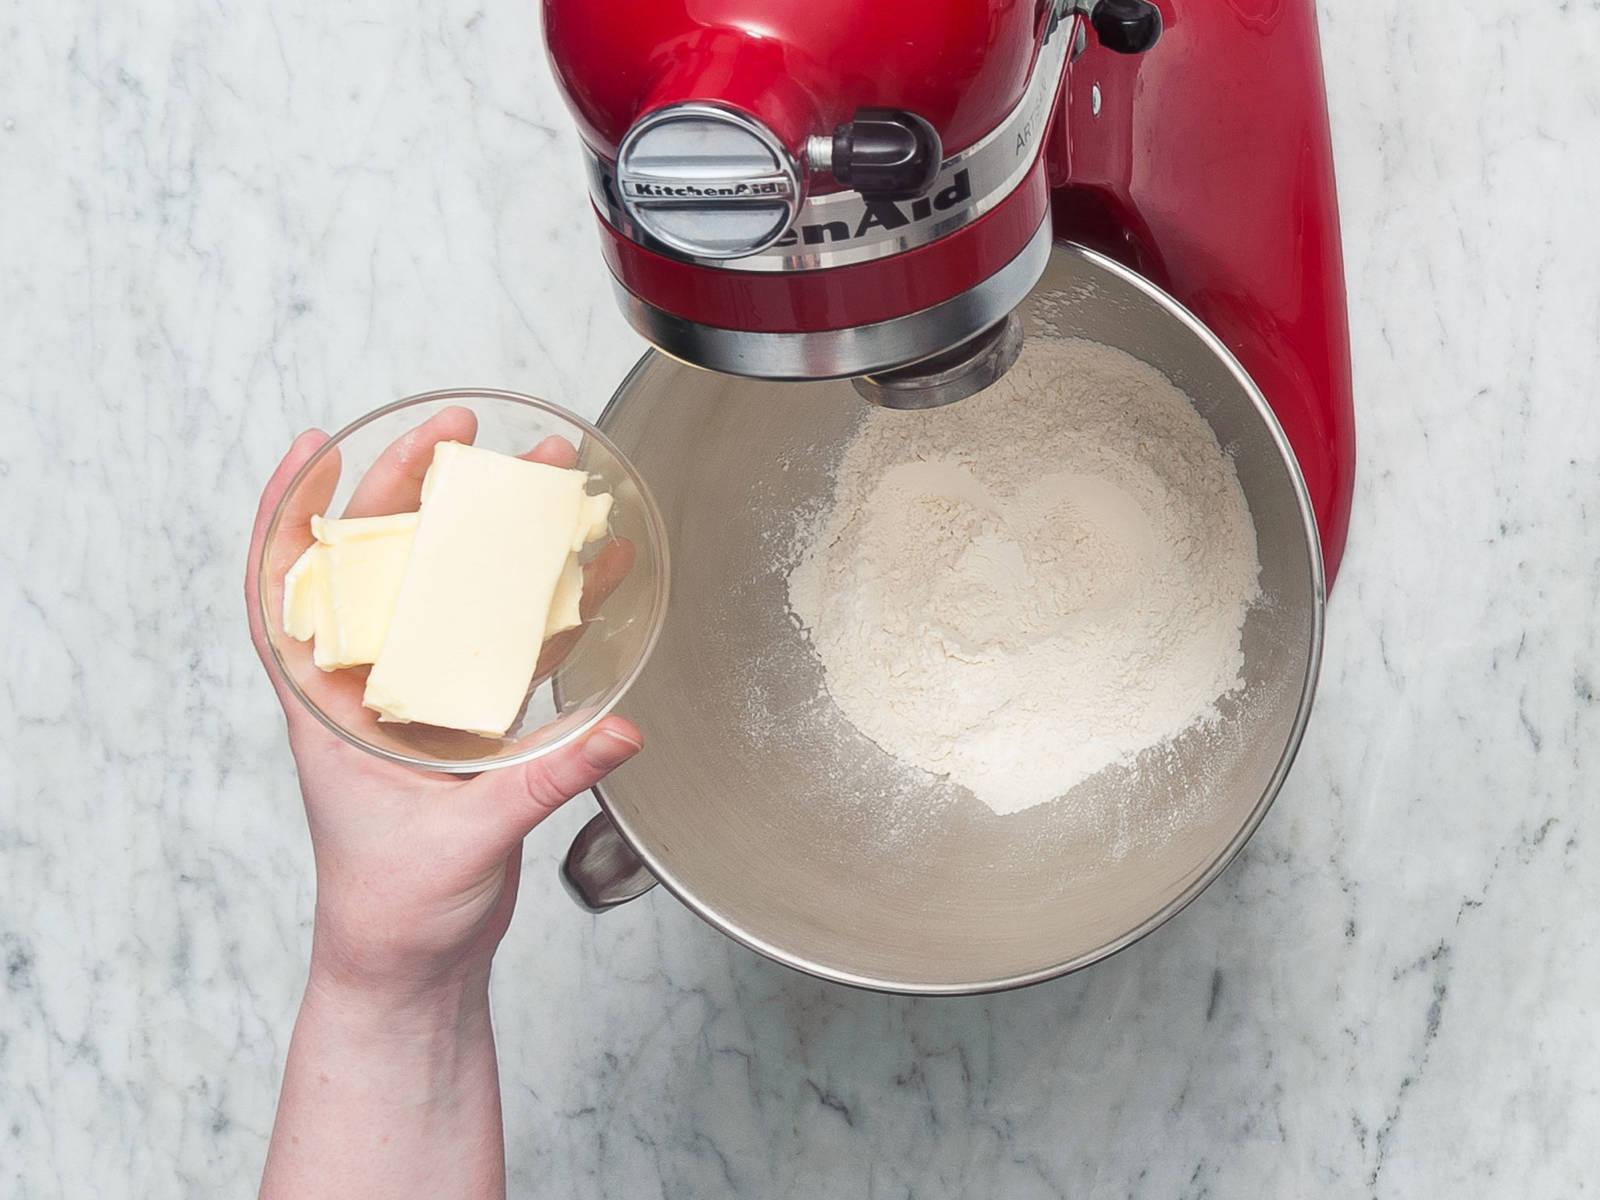 Mix flour and baking powder together in a mixing bowl or the bowl of stand mixer. Add butter and stir to combine until a crumbly dough forms.